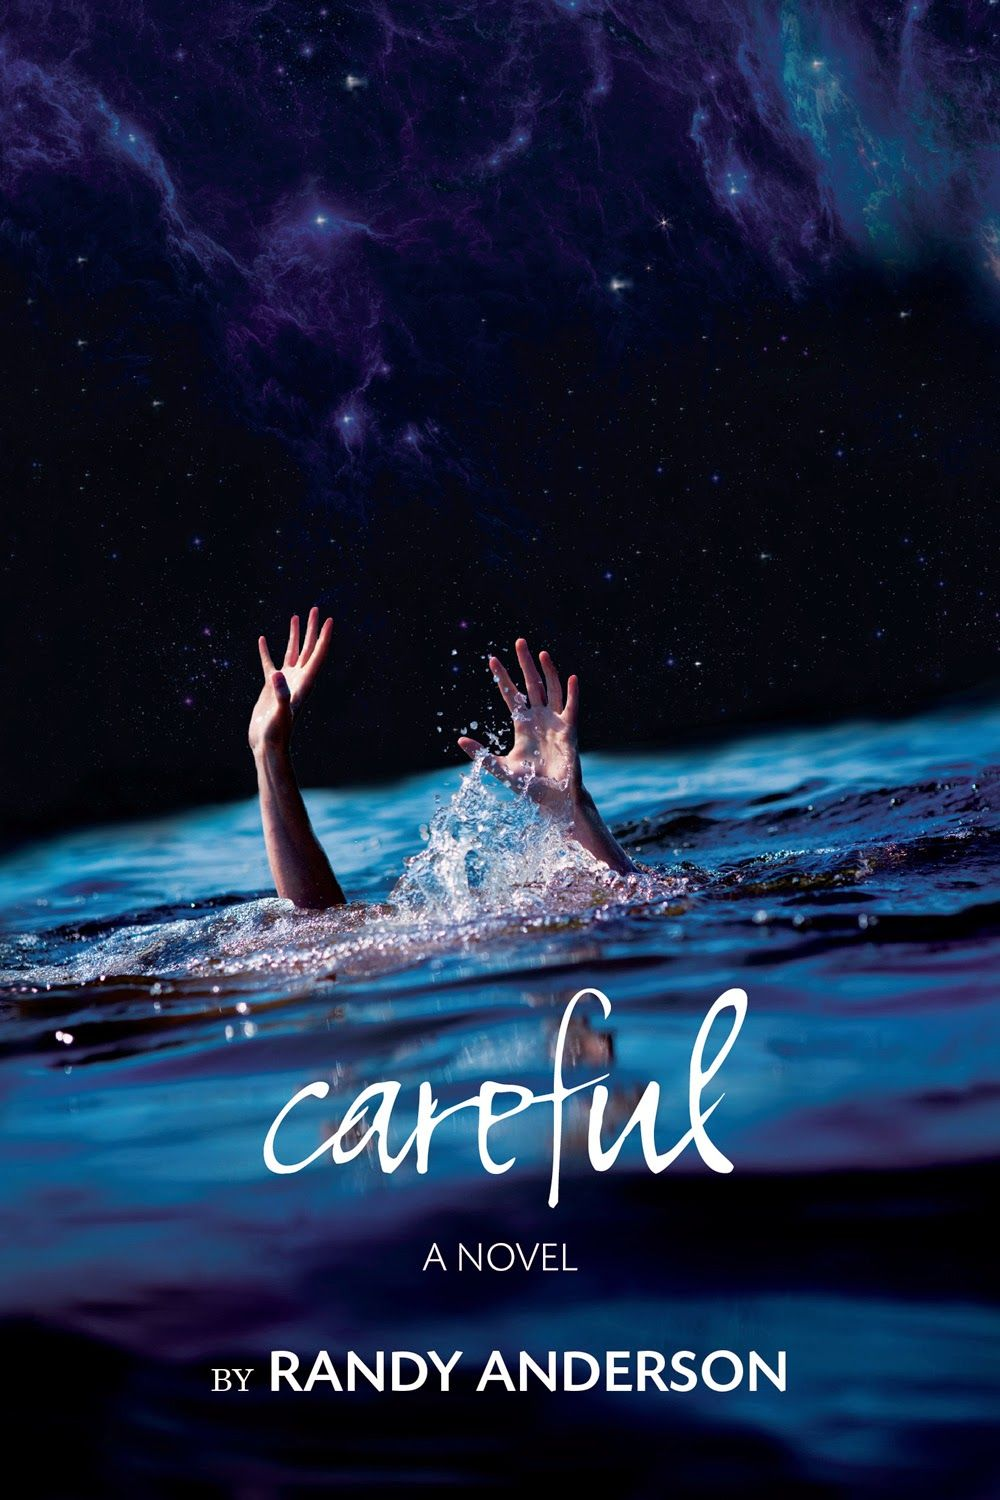 Angels With Attitude Book Reviews: Super Book Blast for Careful with Author Randy Anderson